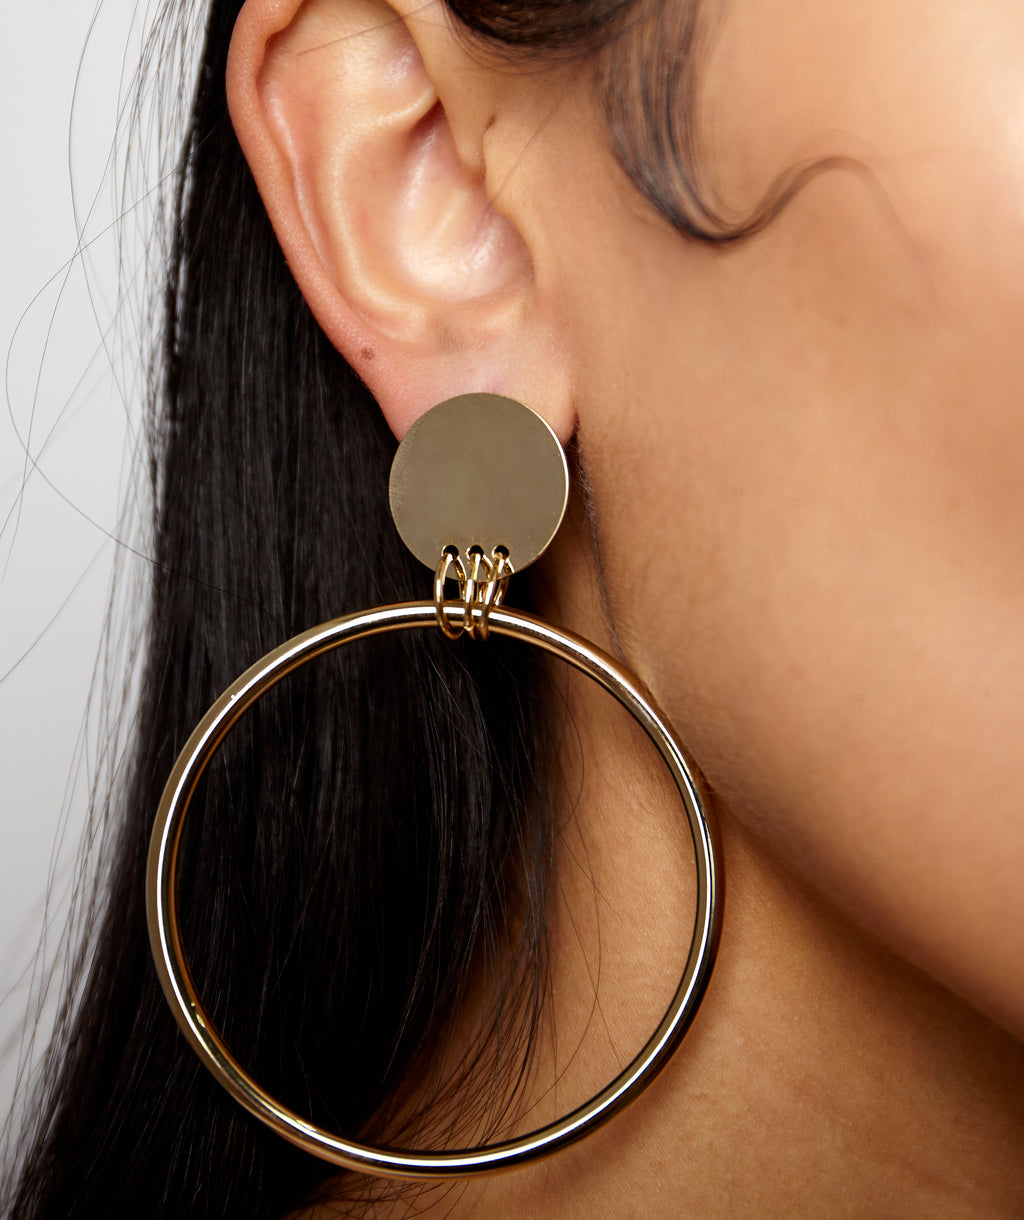 STUDIO 54 HOOP EARRINGS